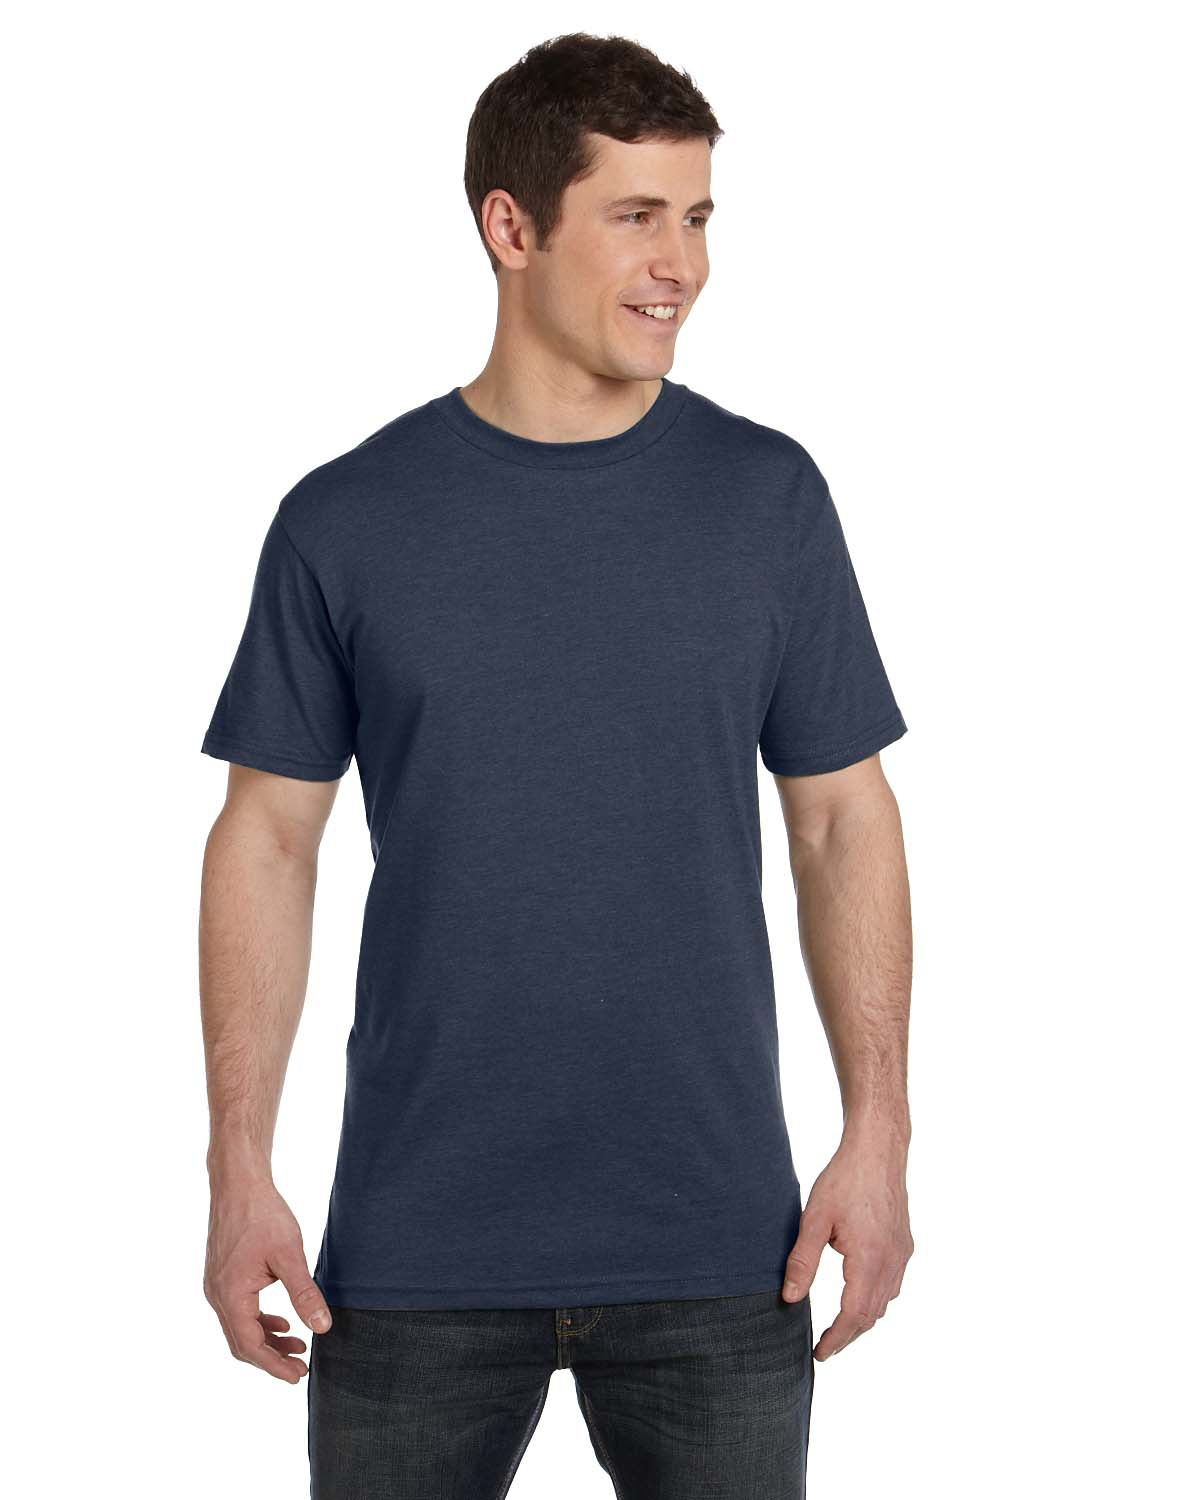 Econscious EC1080 - 4.25 oz. Blended Eco T-Shirt